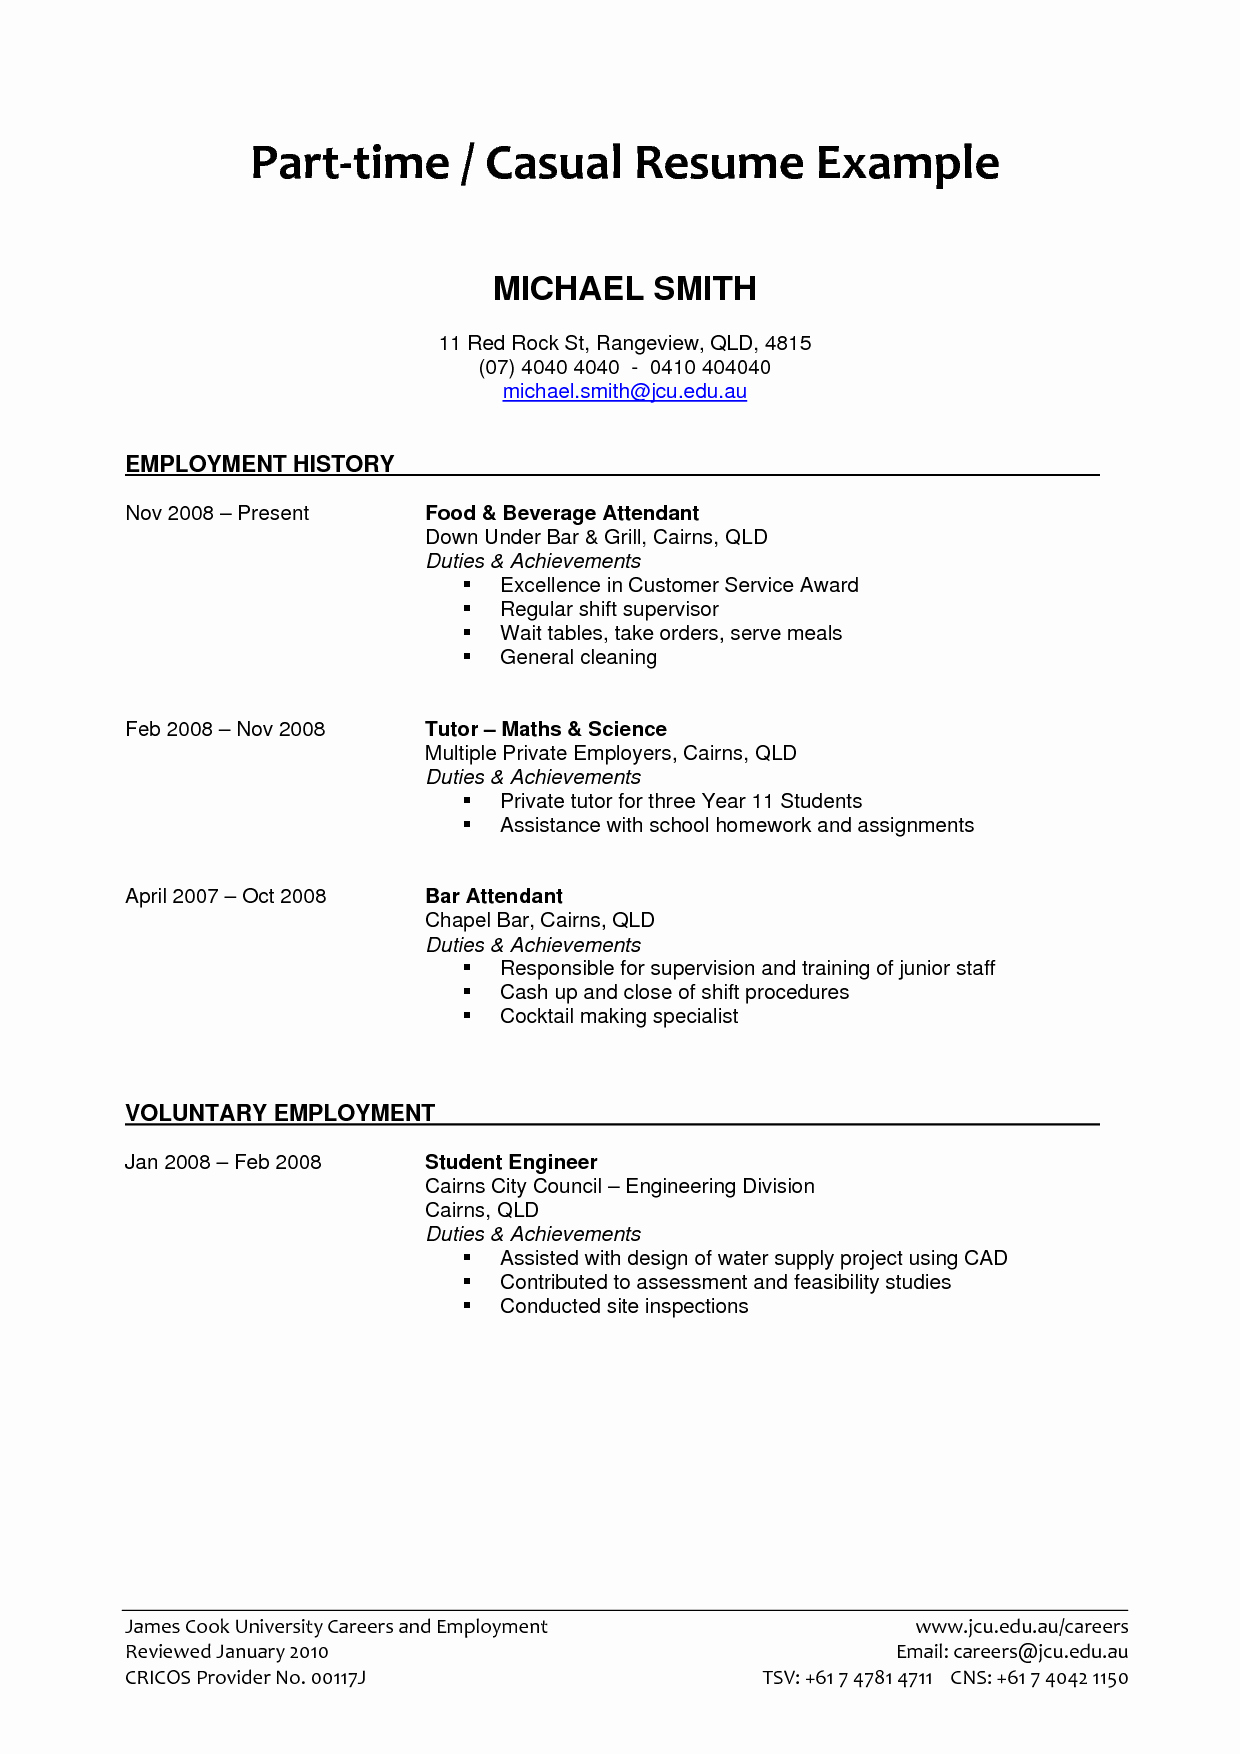 Part Time Job Resume Lovely Part Time Job Resume Examples 2019